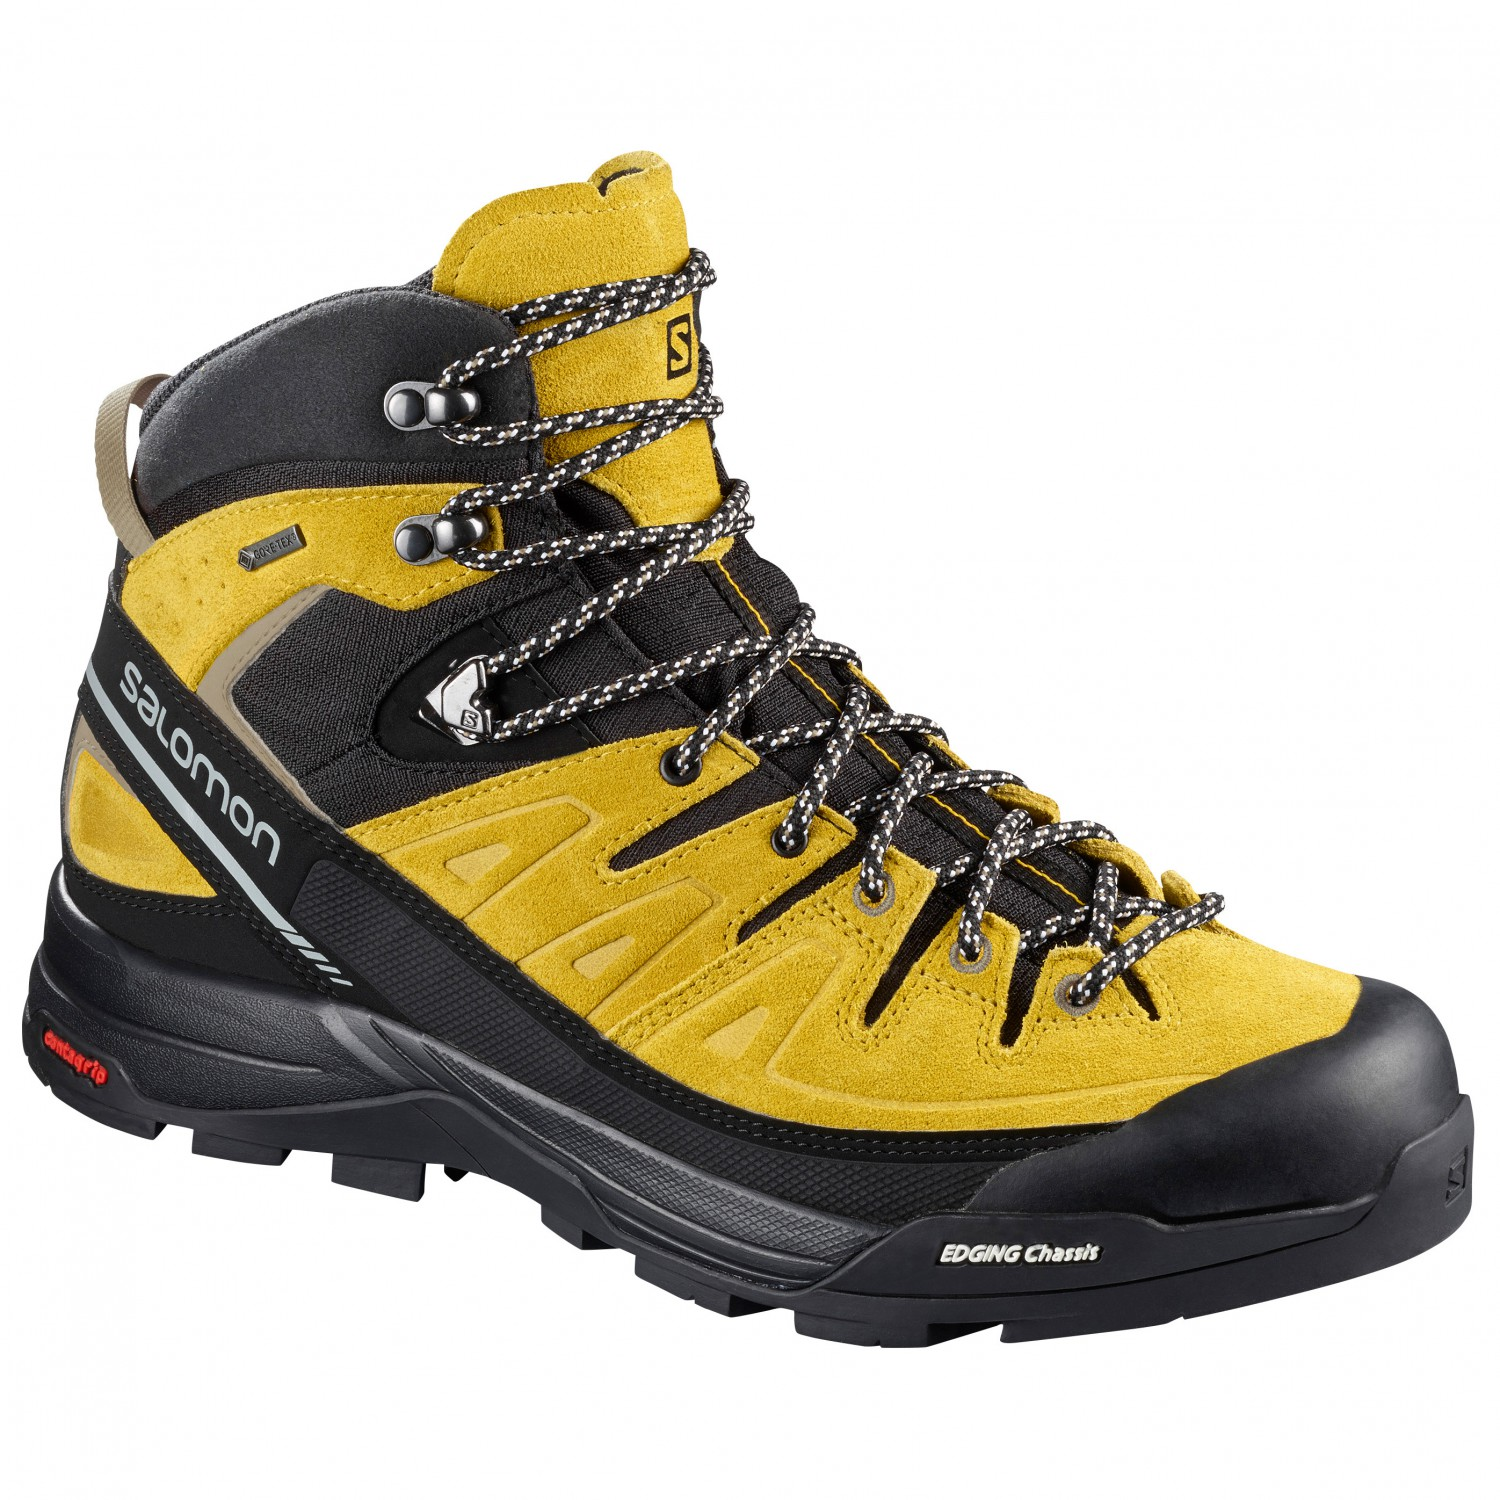 e781f9a904f Salomon X Alp Mid Leather GTX - Mountaineering Boots Men's | Free UK ...